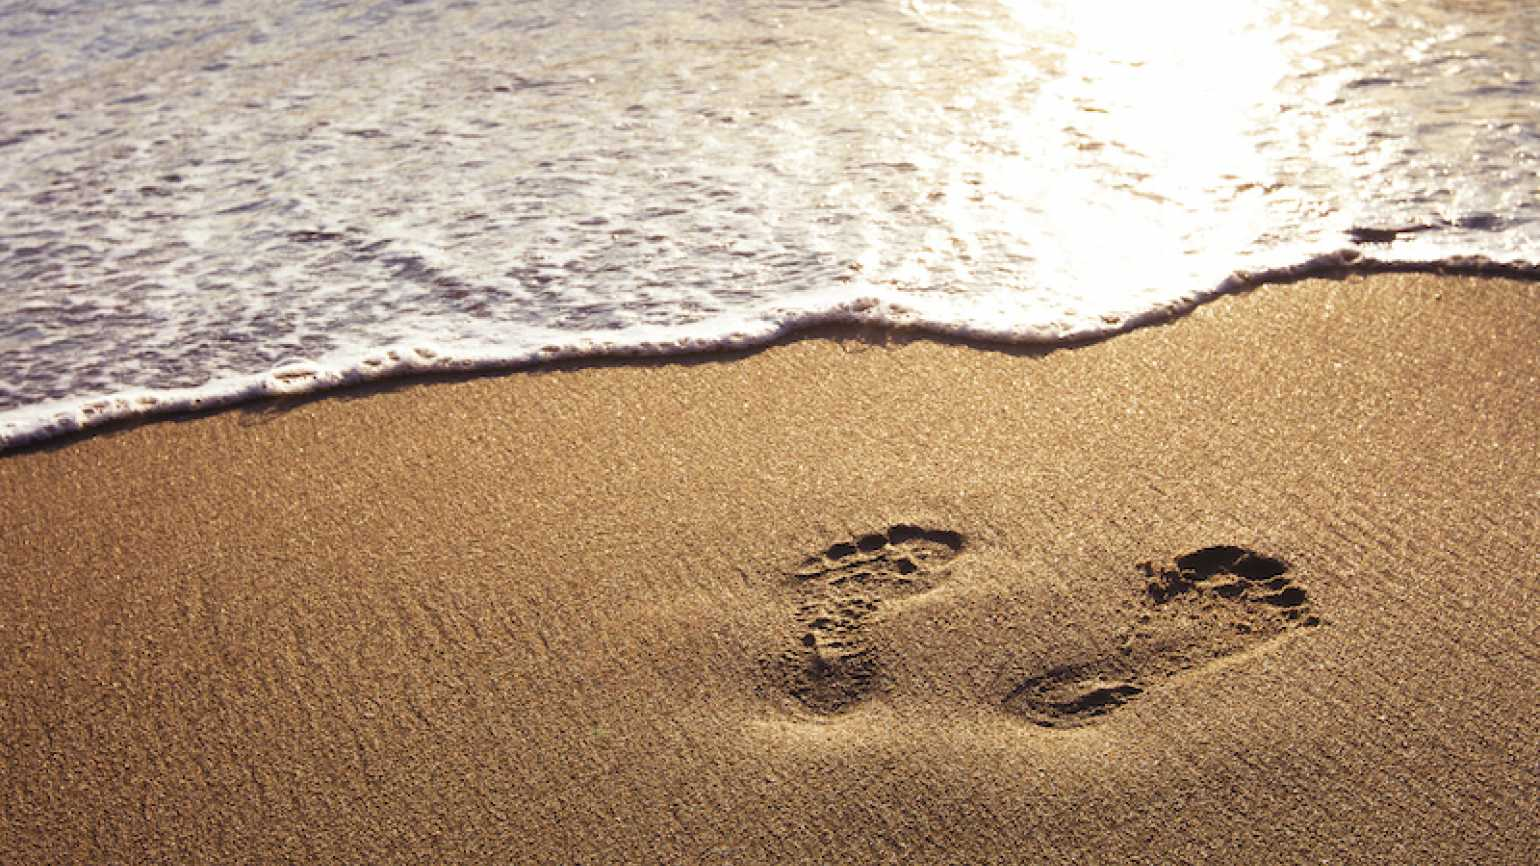 Footprints in the sand. Photo by Anya Berkut, Thinkstock.